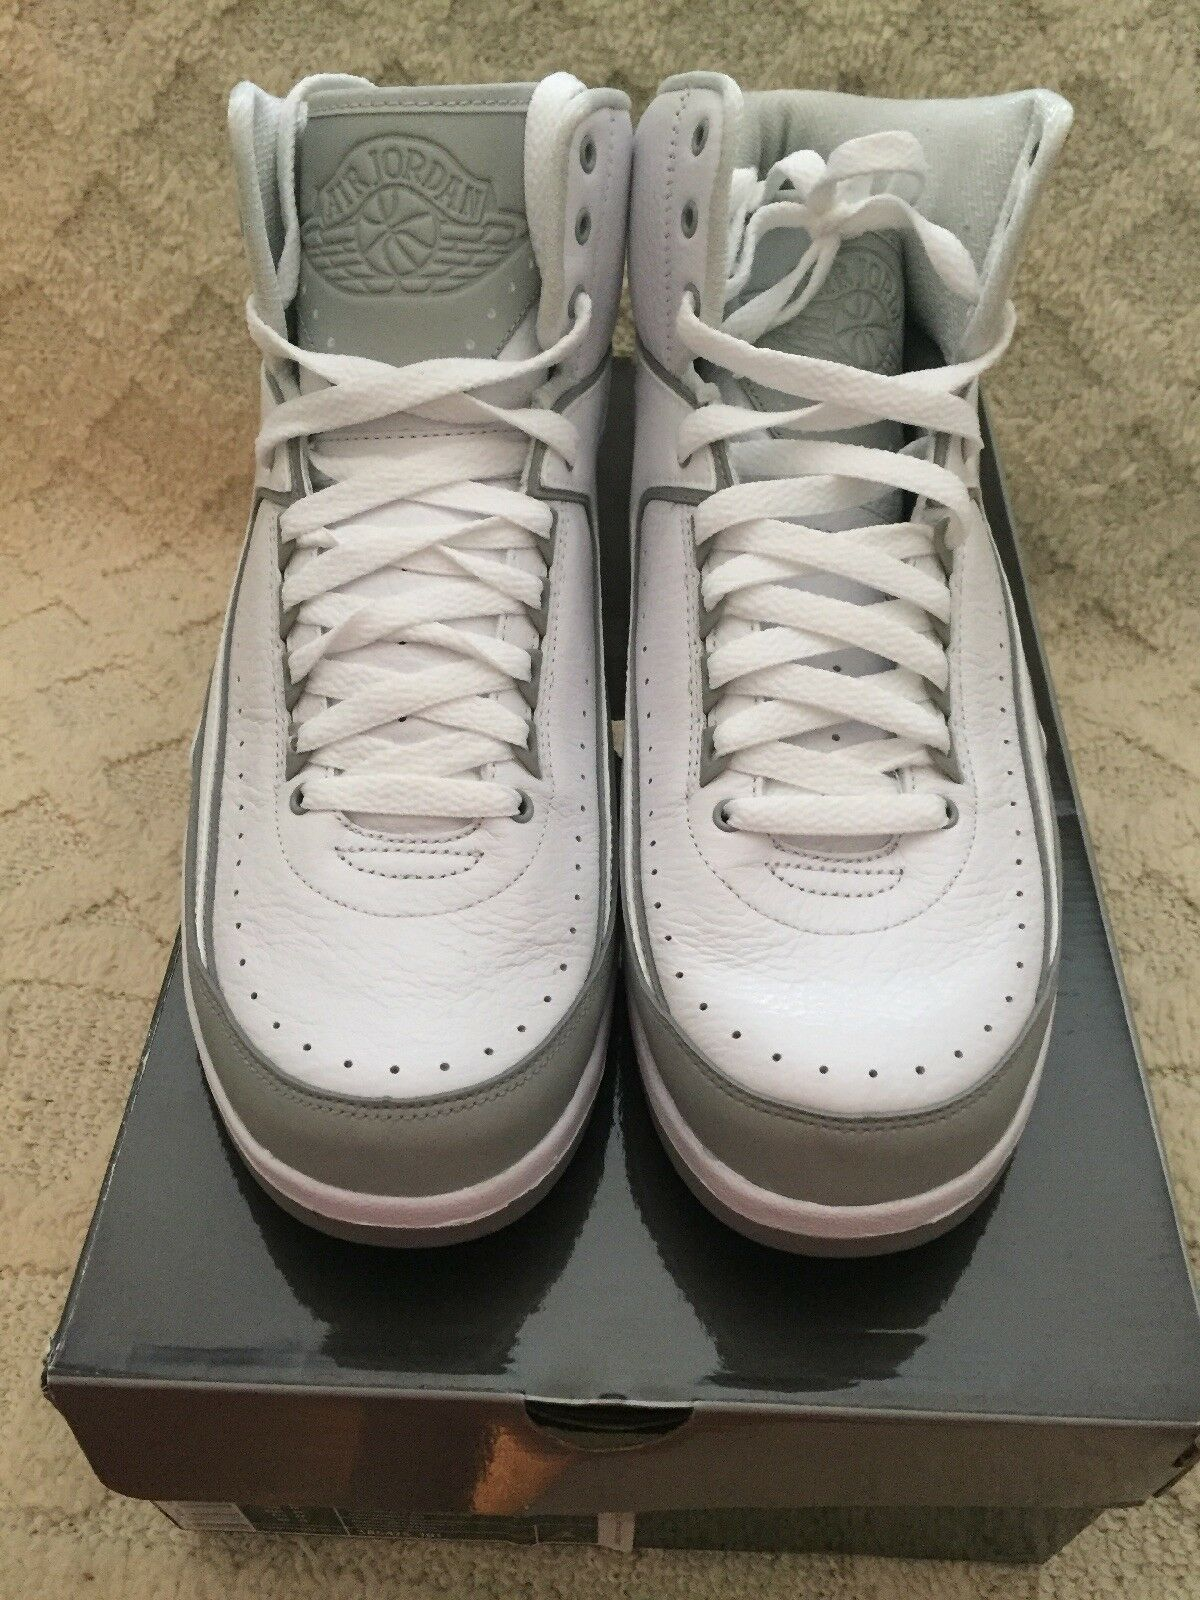 Nike Air Jordan 2 Retro White/Metallic Silver-Ntrl Grey 385475-101 SZ 11